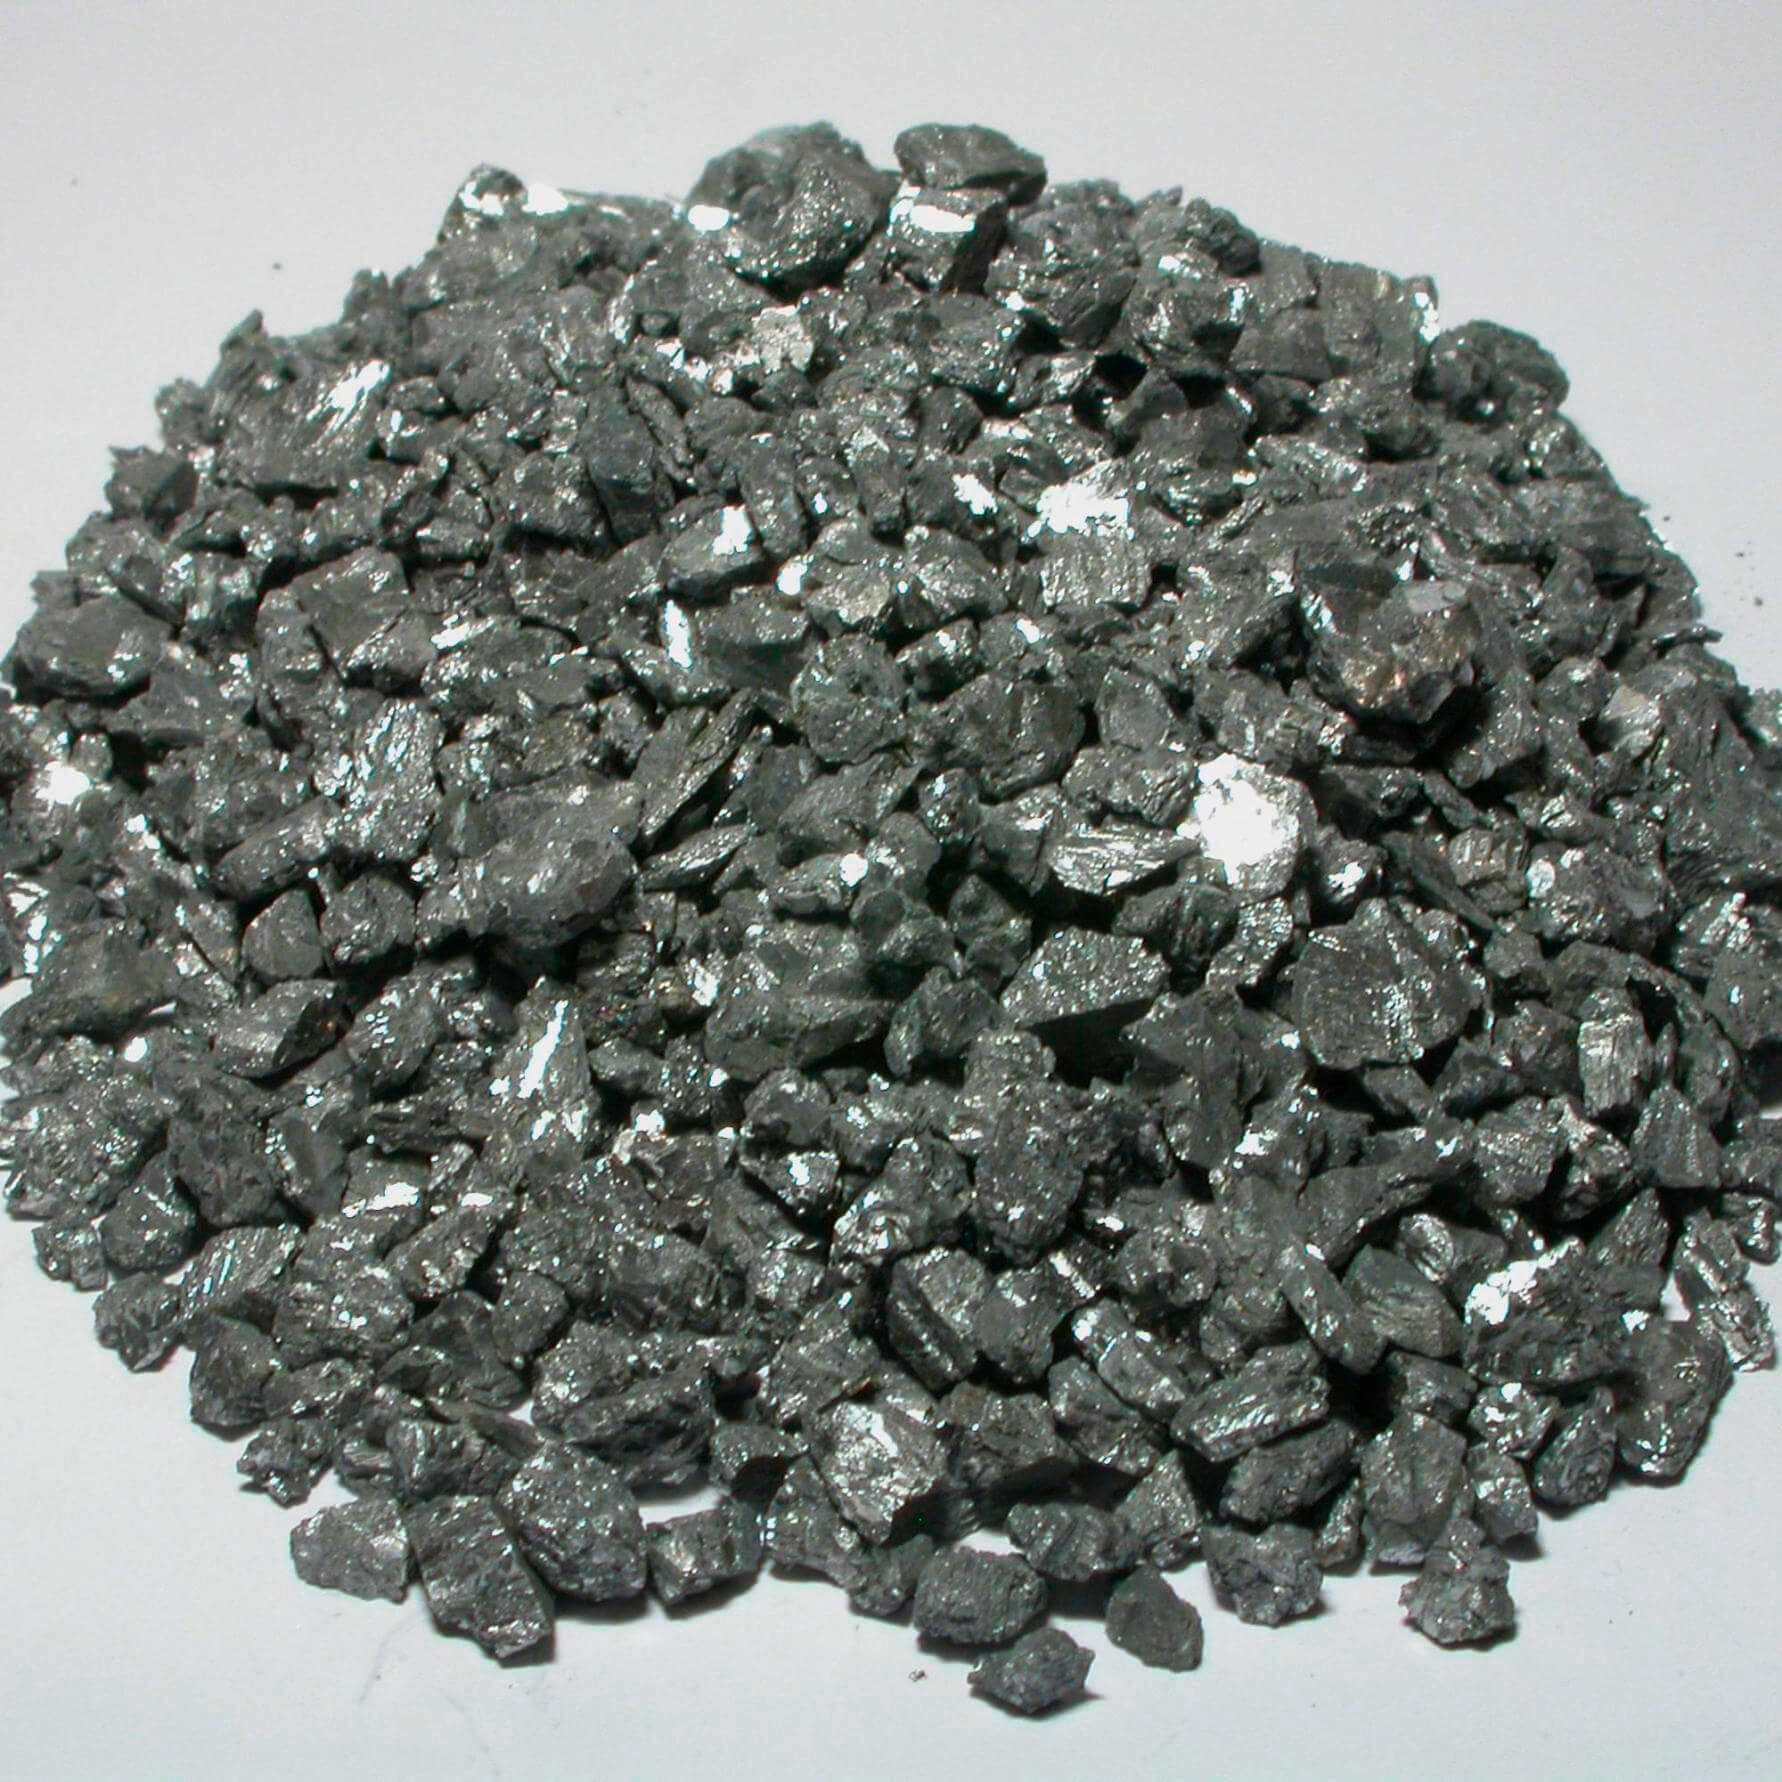 sources of vanadium